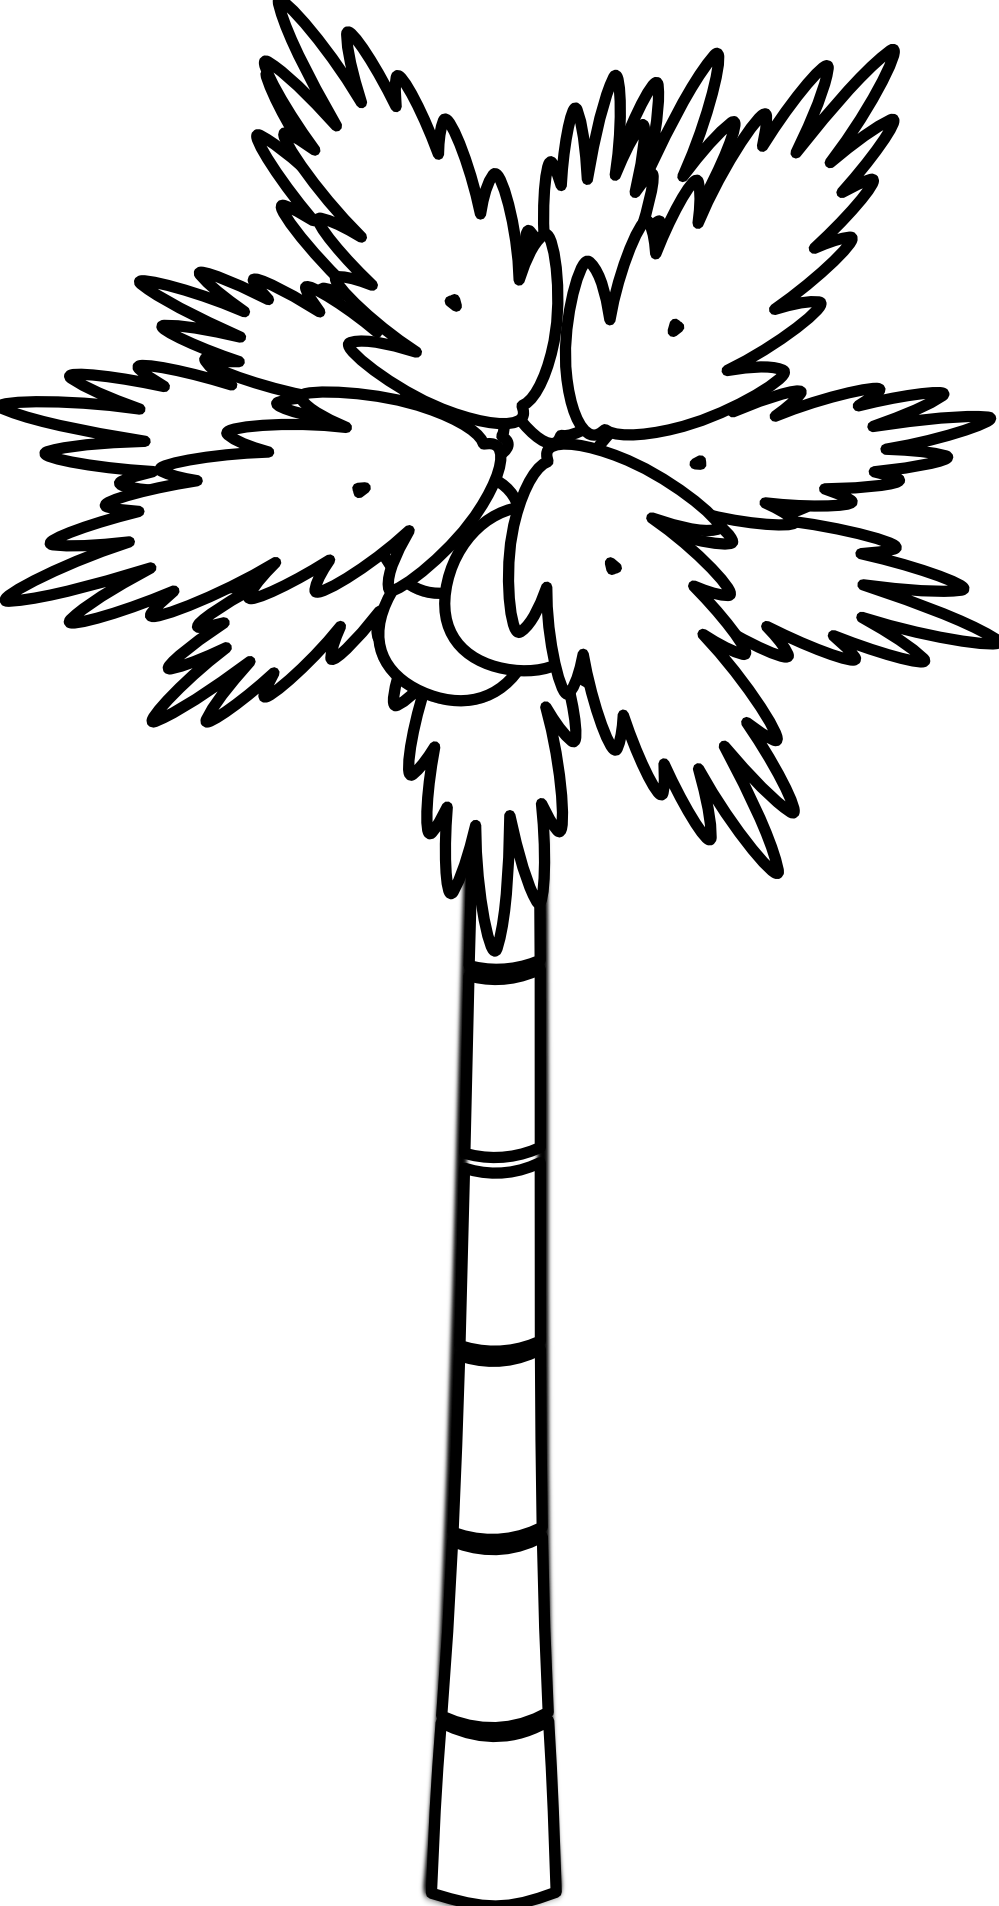 Tree black and white clipart image black and white stock Free Tree Drawings Black And White, Download Free Clip Art, Free ... image black and white stock